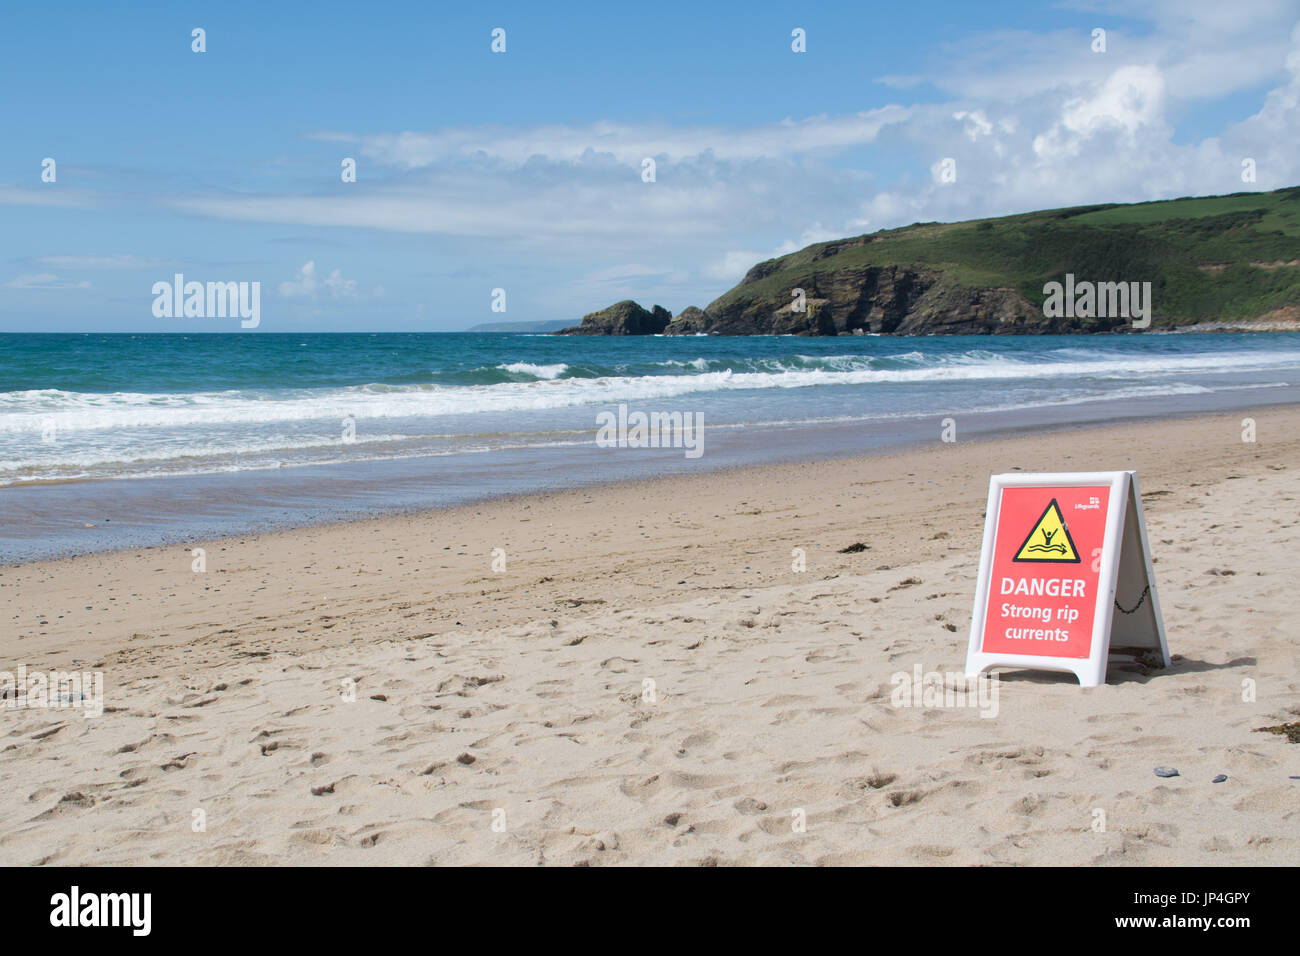 Danger strong rip currents sign on beach - Stock Image